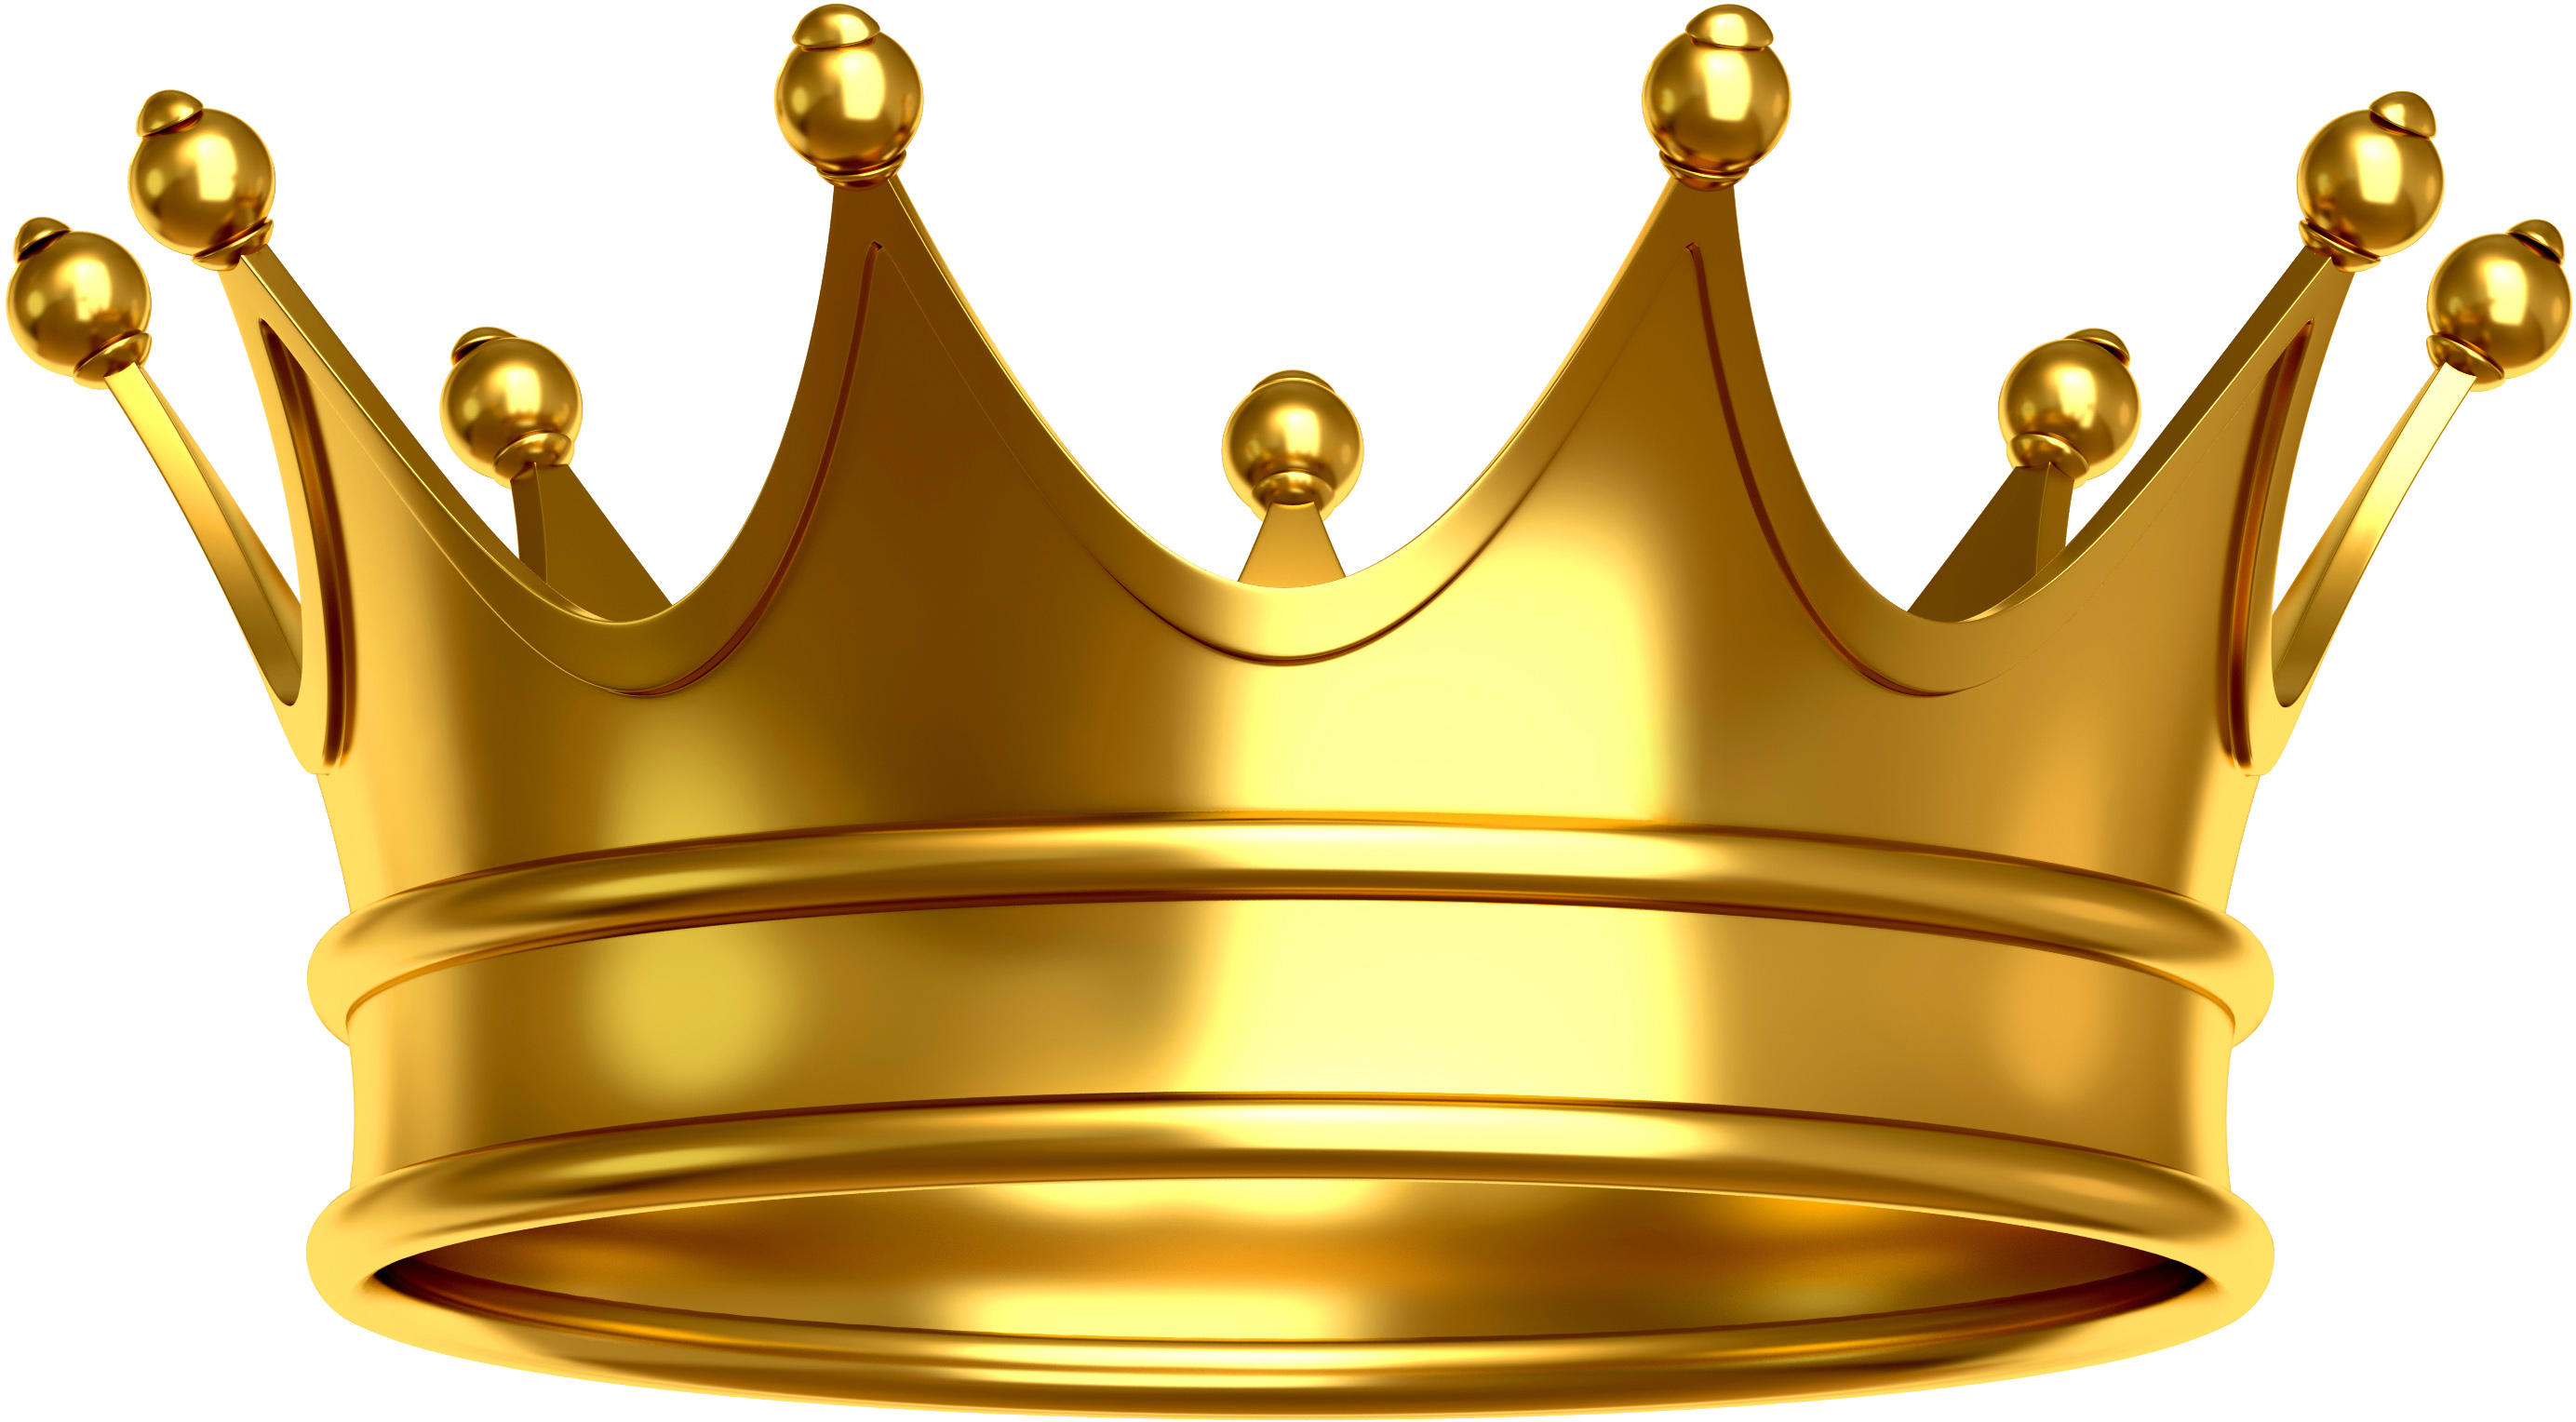 gold crown clipart clipart suggest